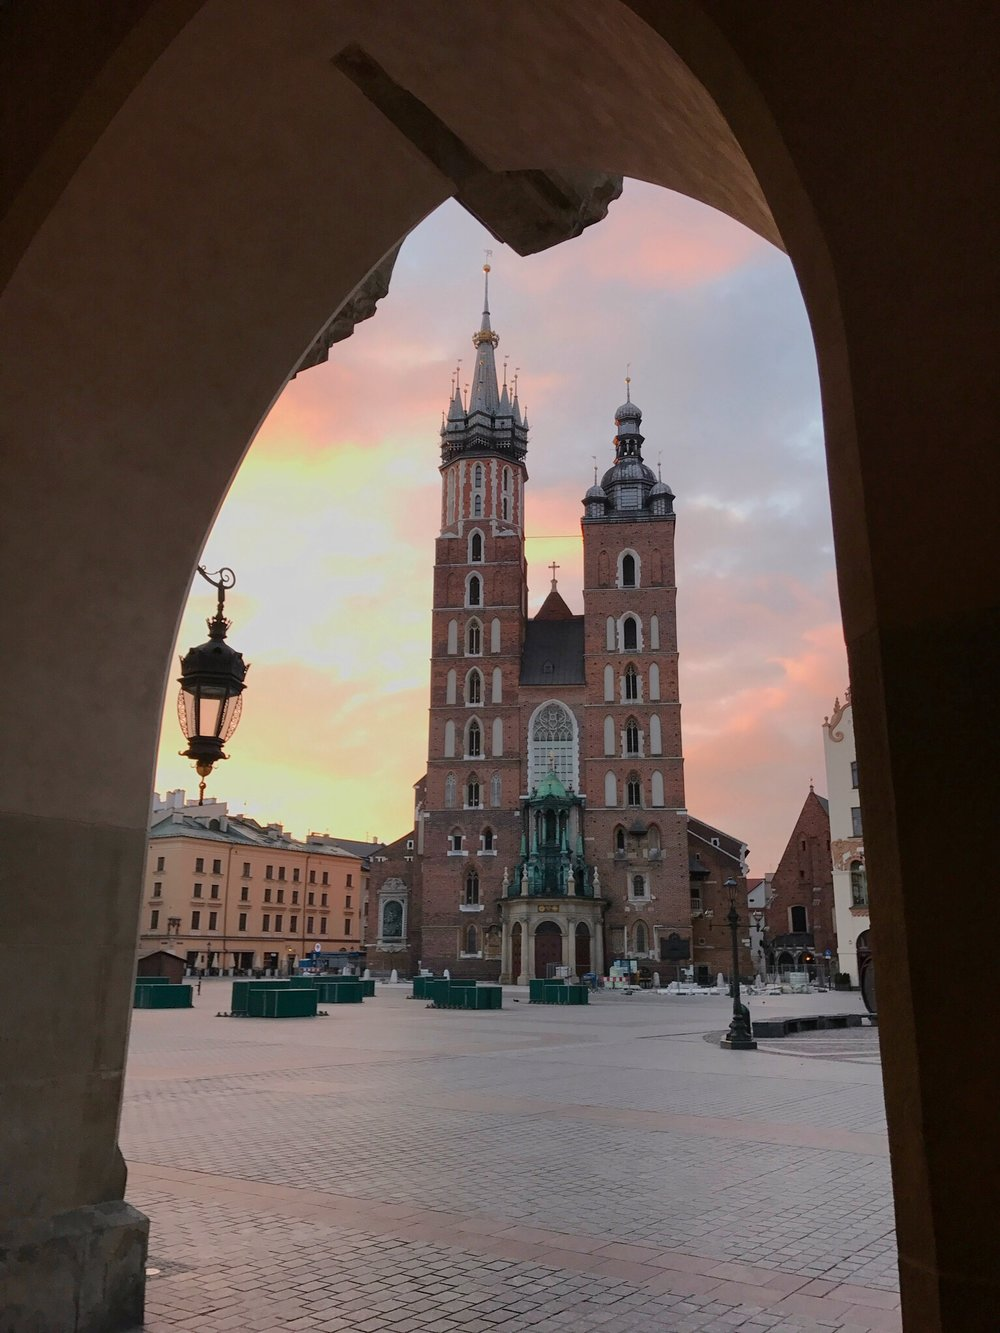 Sunrise behind St. Mary's Church in Krakow, Poland